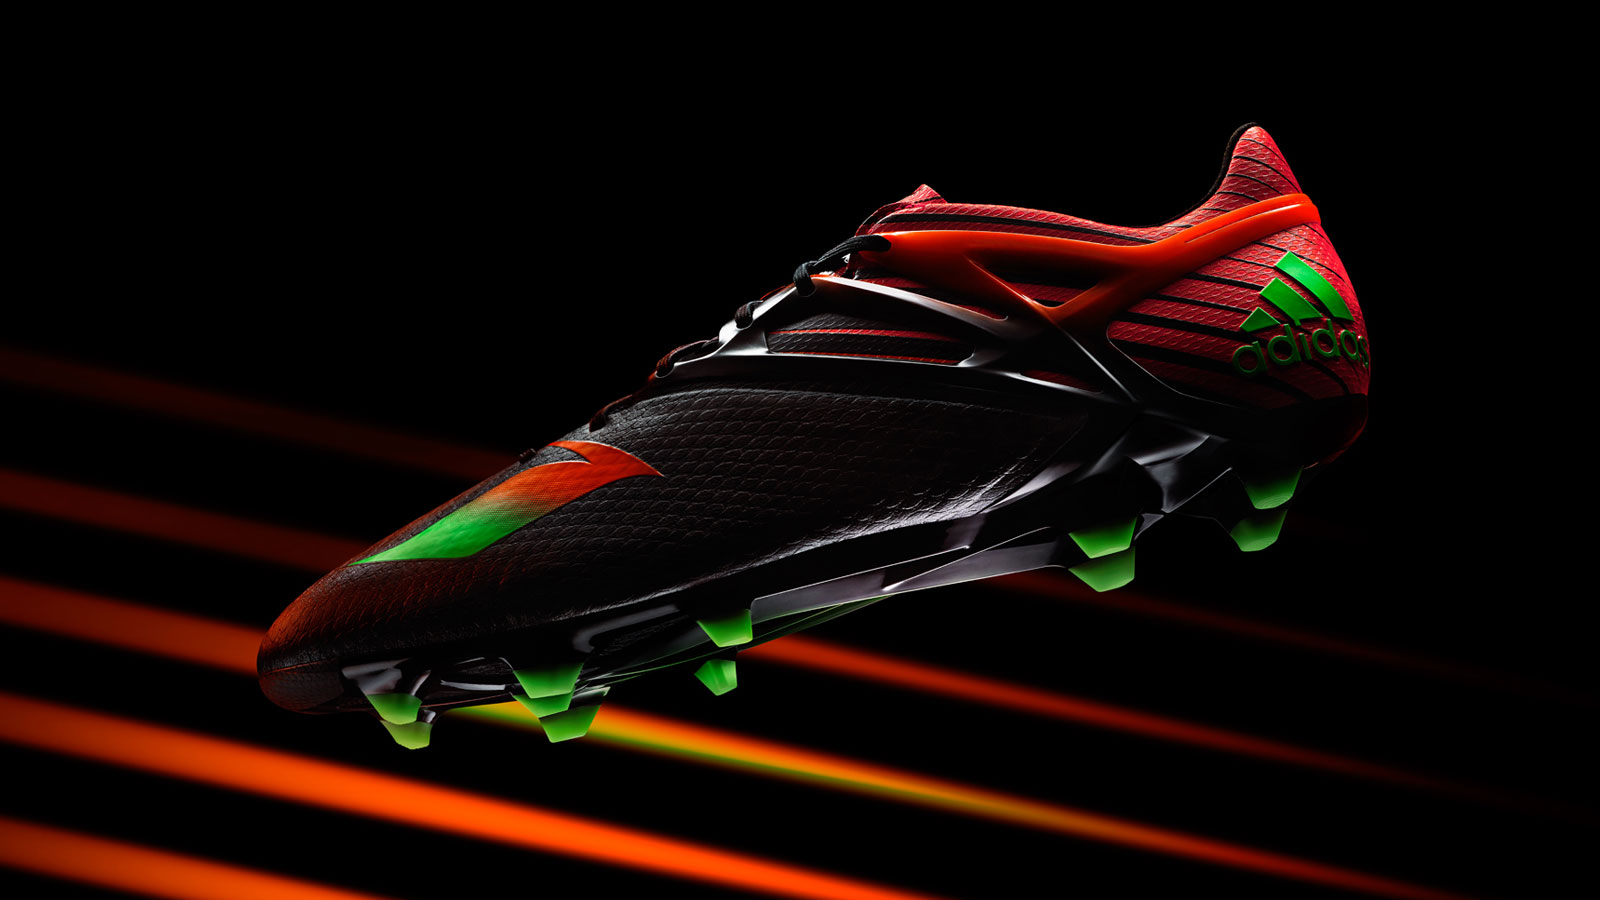 Adidas Messi 15.1 Build to win black Core